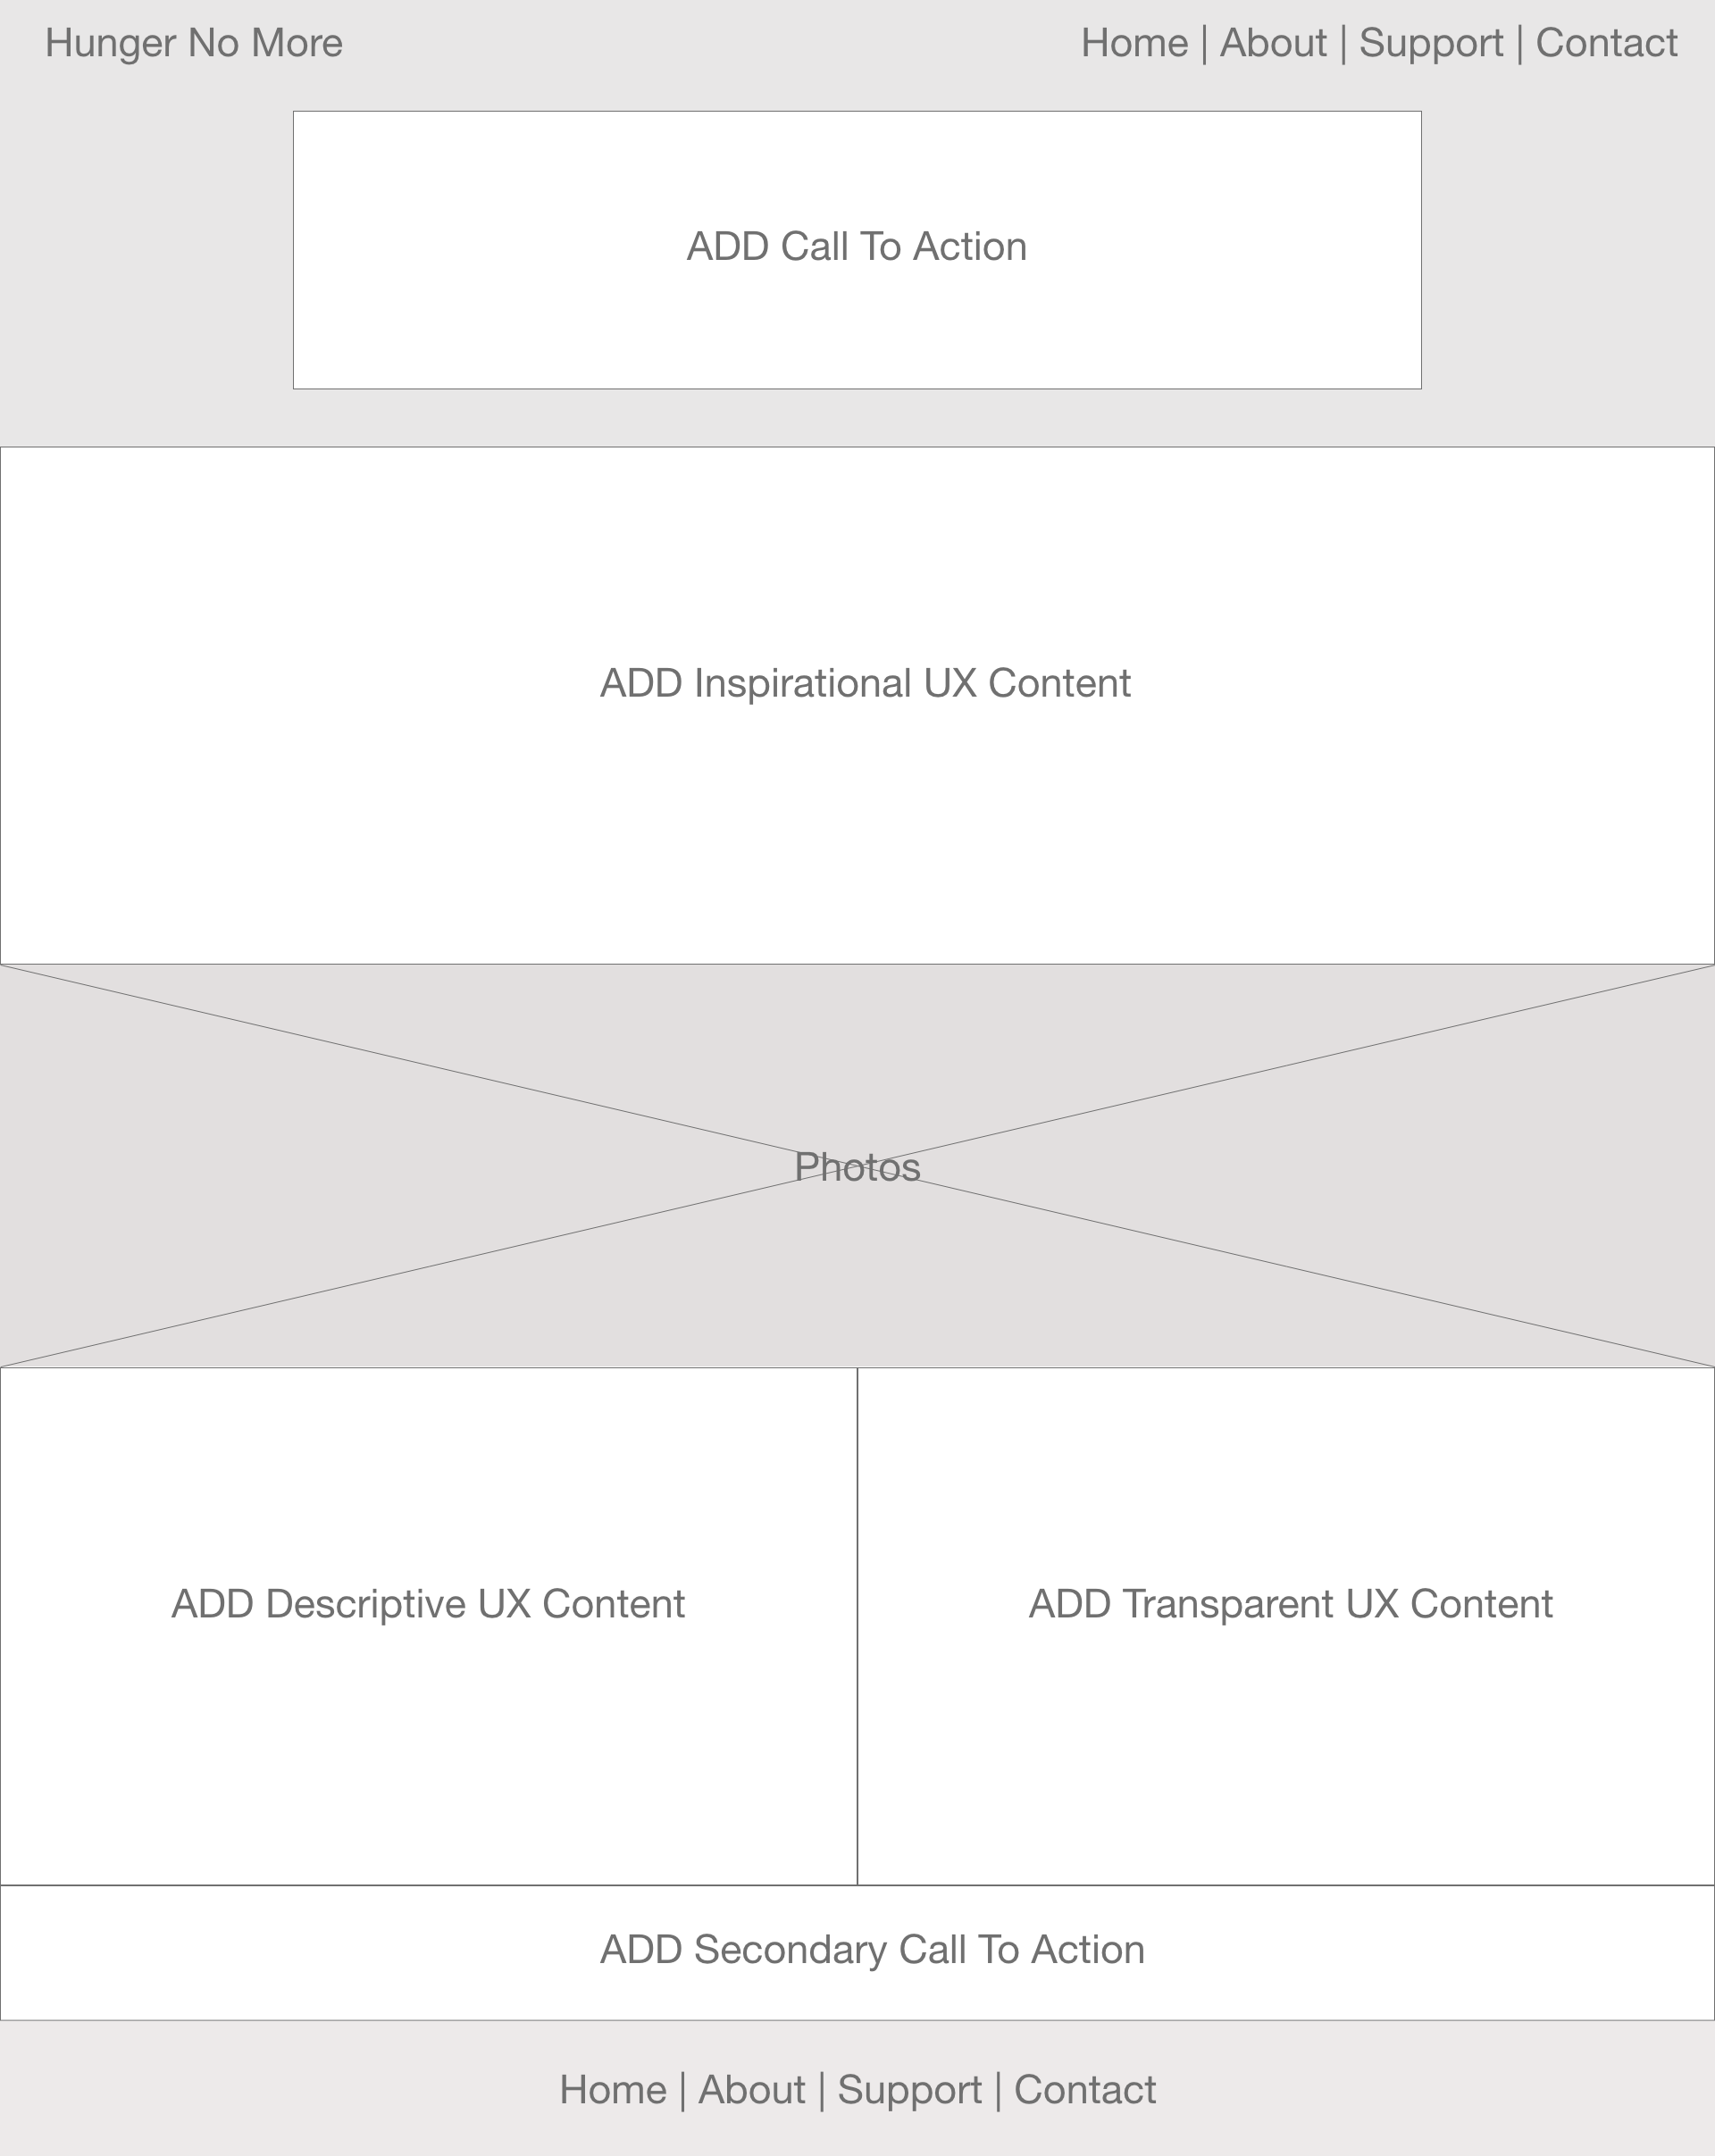 The wireframe of the home page.